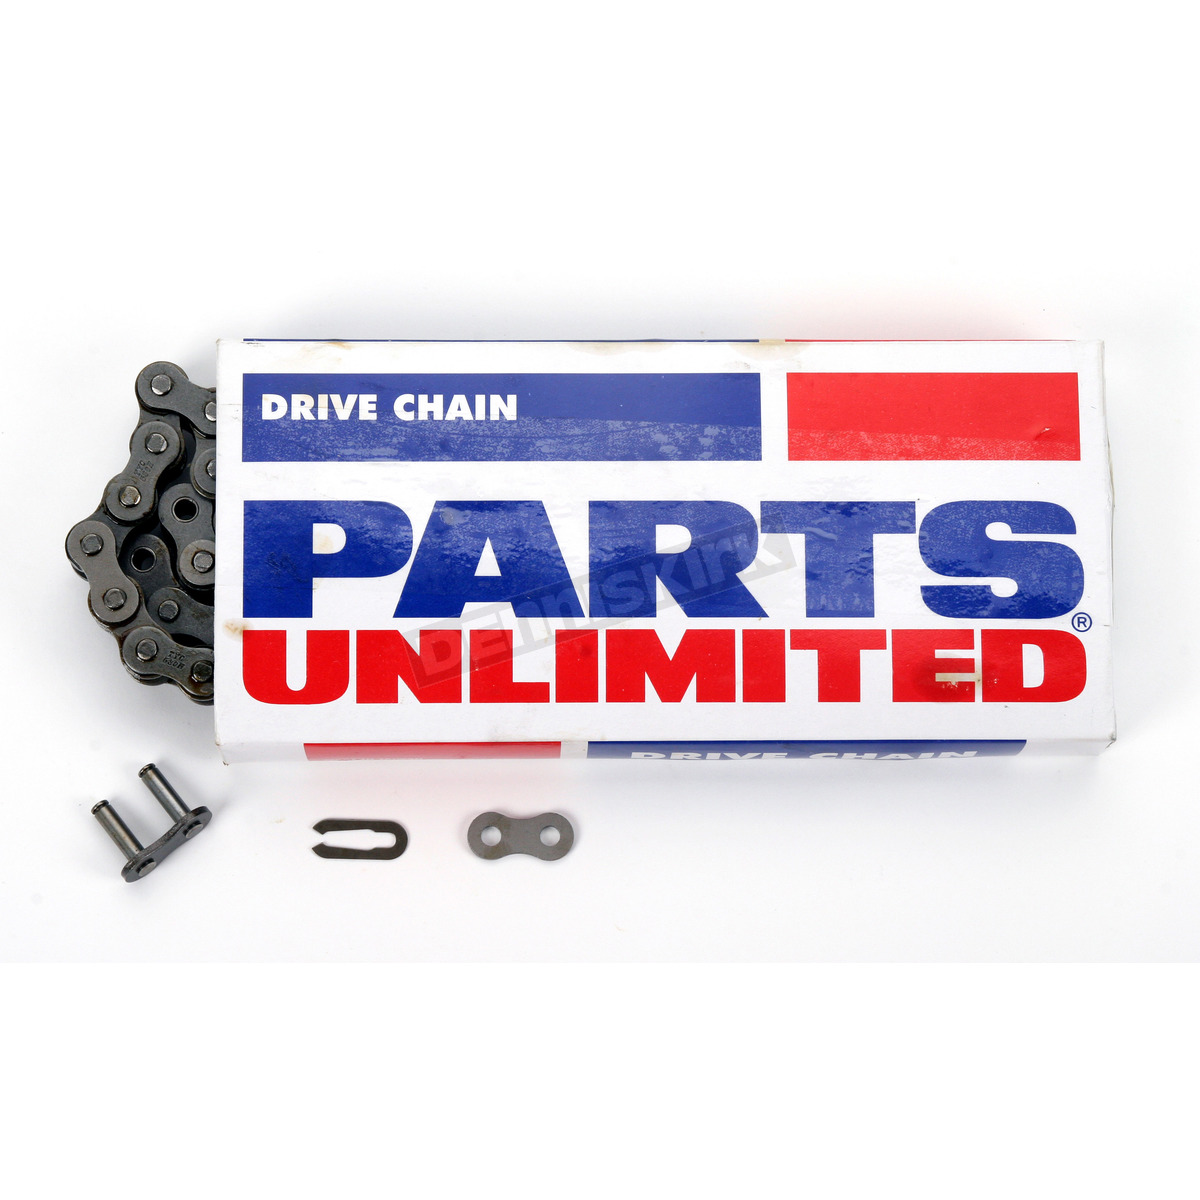 Parts Unlimited Parts As the world's largest distributor of aftermarket parts and No Hassle Returns · Lowest Price Guarantee · Same Day Shipping.